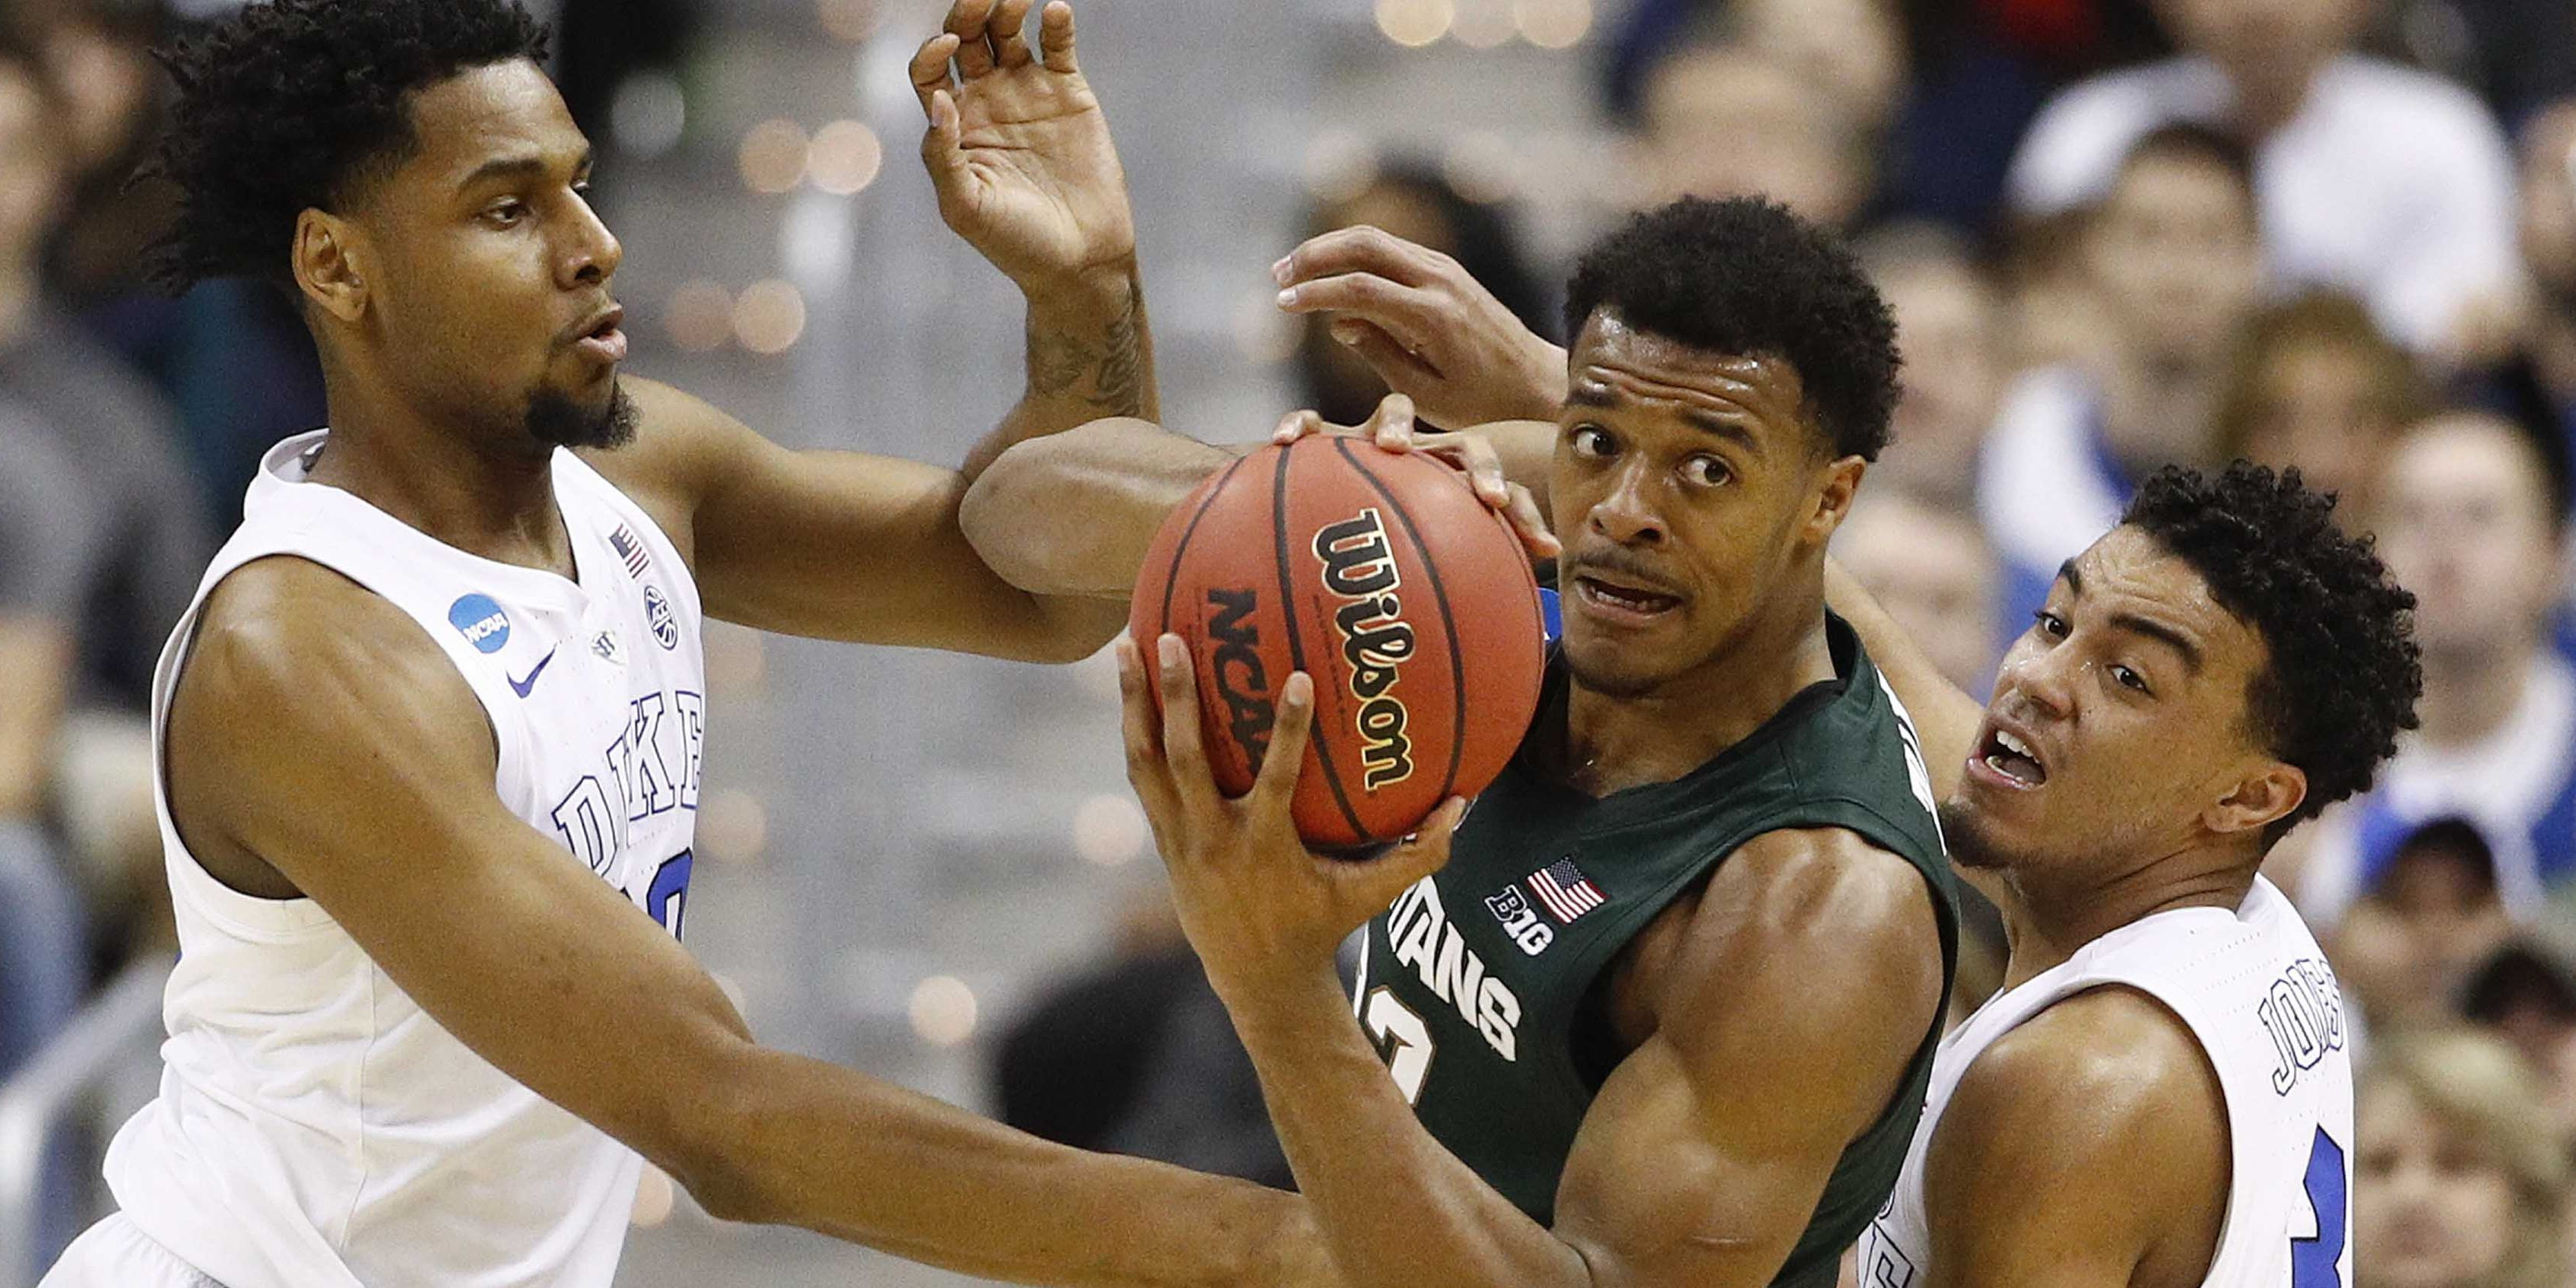 1b856b6f7fde Michigan State knocks off Duke 68-67 to make Final Four